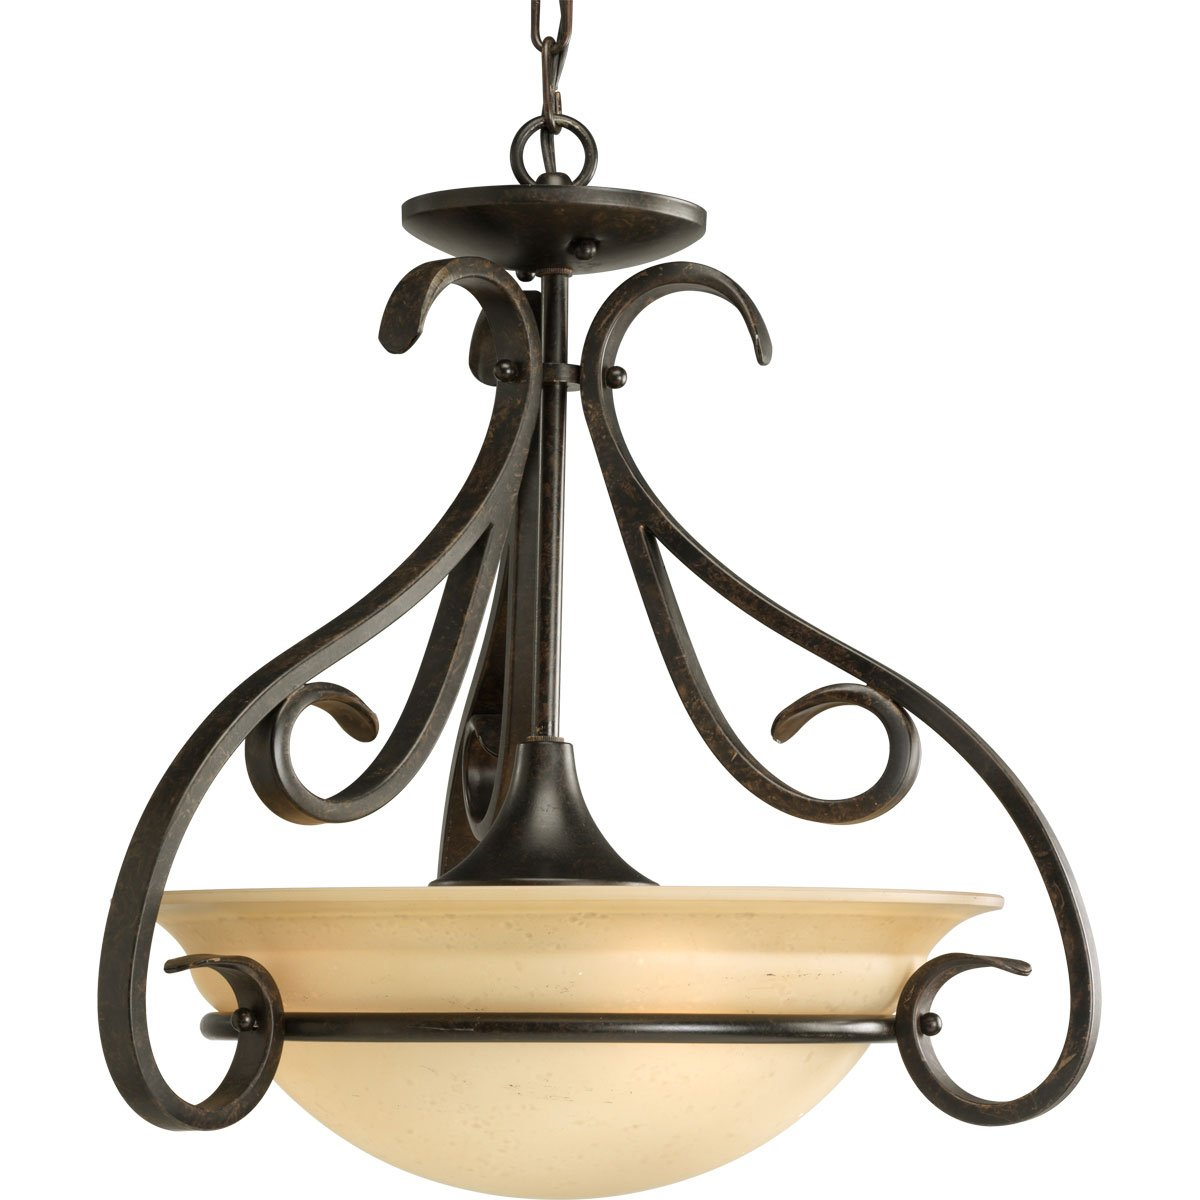 Forged Bronze Progress Lighting P3843-09 3-Light Semi-Flush with Etched White Bell-Shaped Glass Bowl and Squared Scrolls and Arms, Brushed Nickel